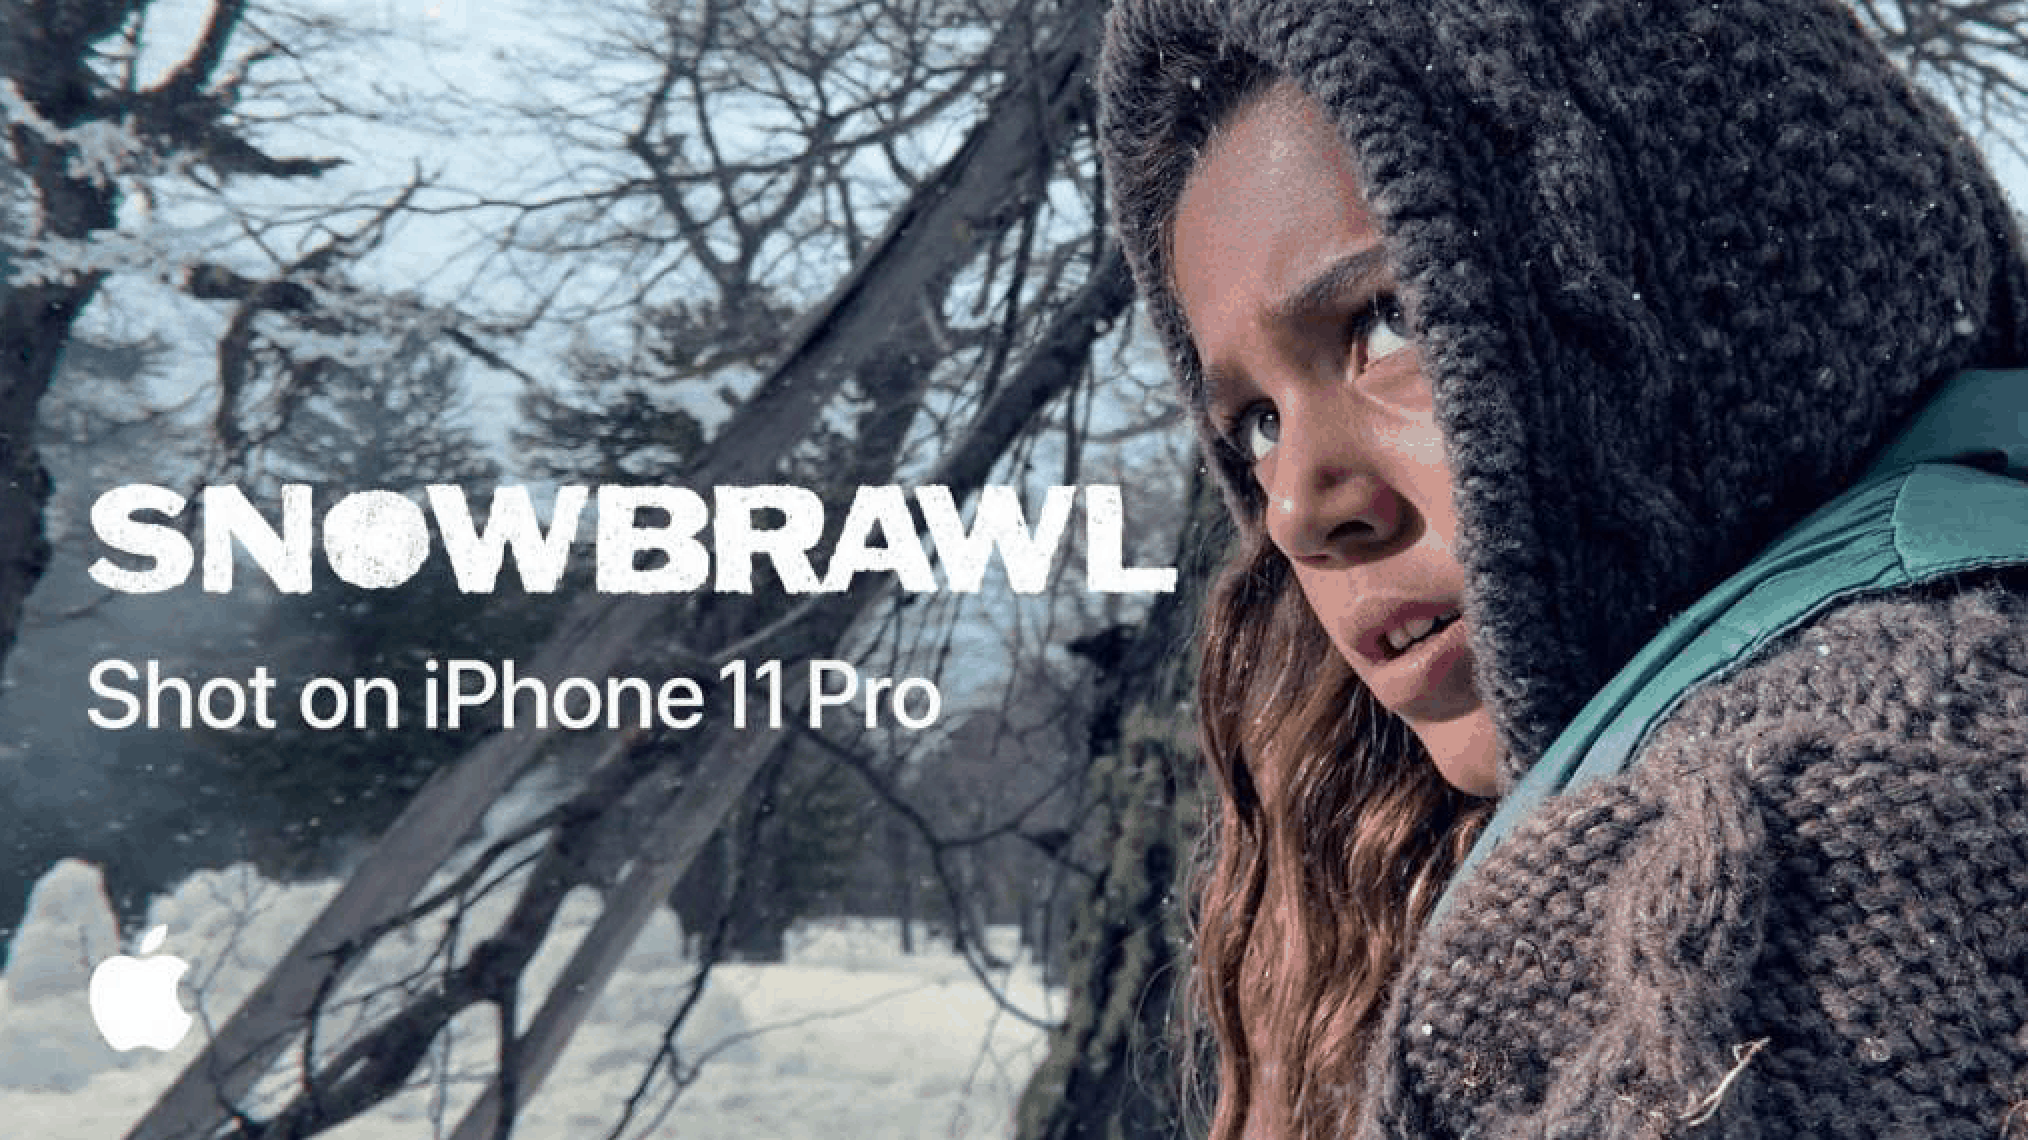 New Shot on iPhone Video, 'Snowbrawl' Revealed